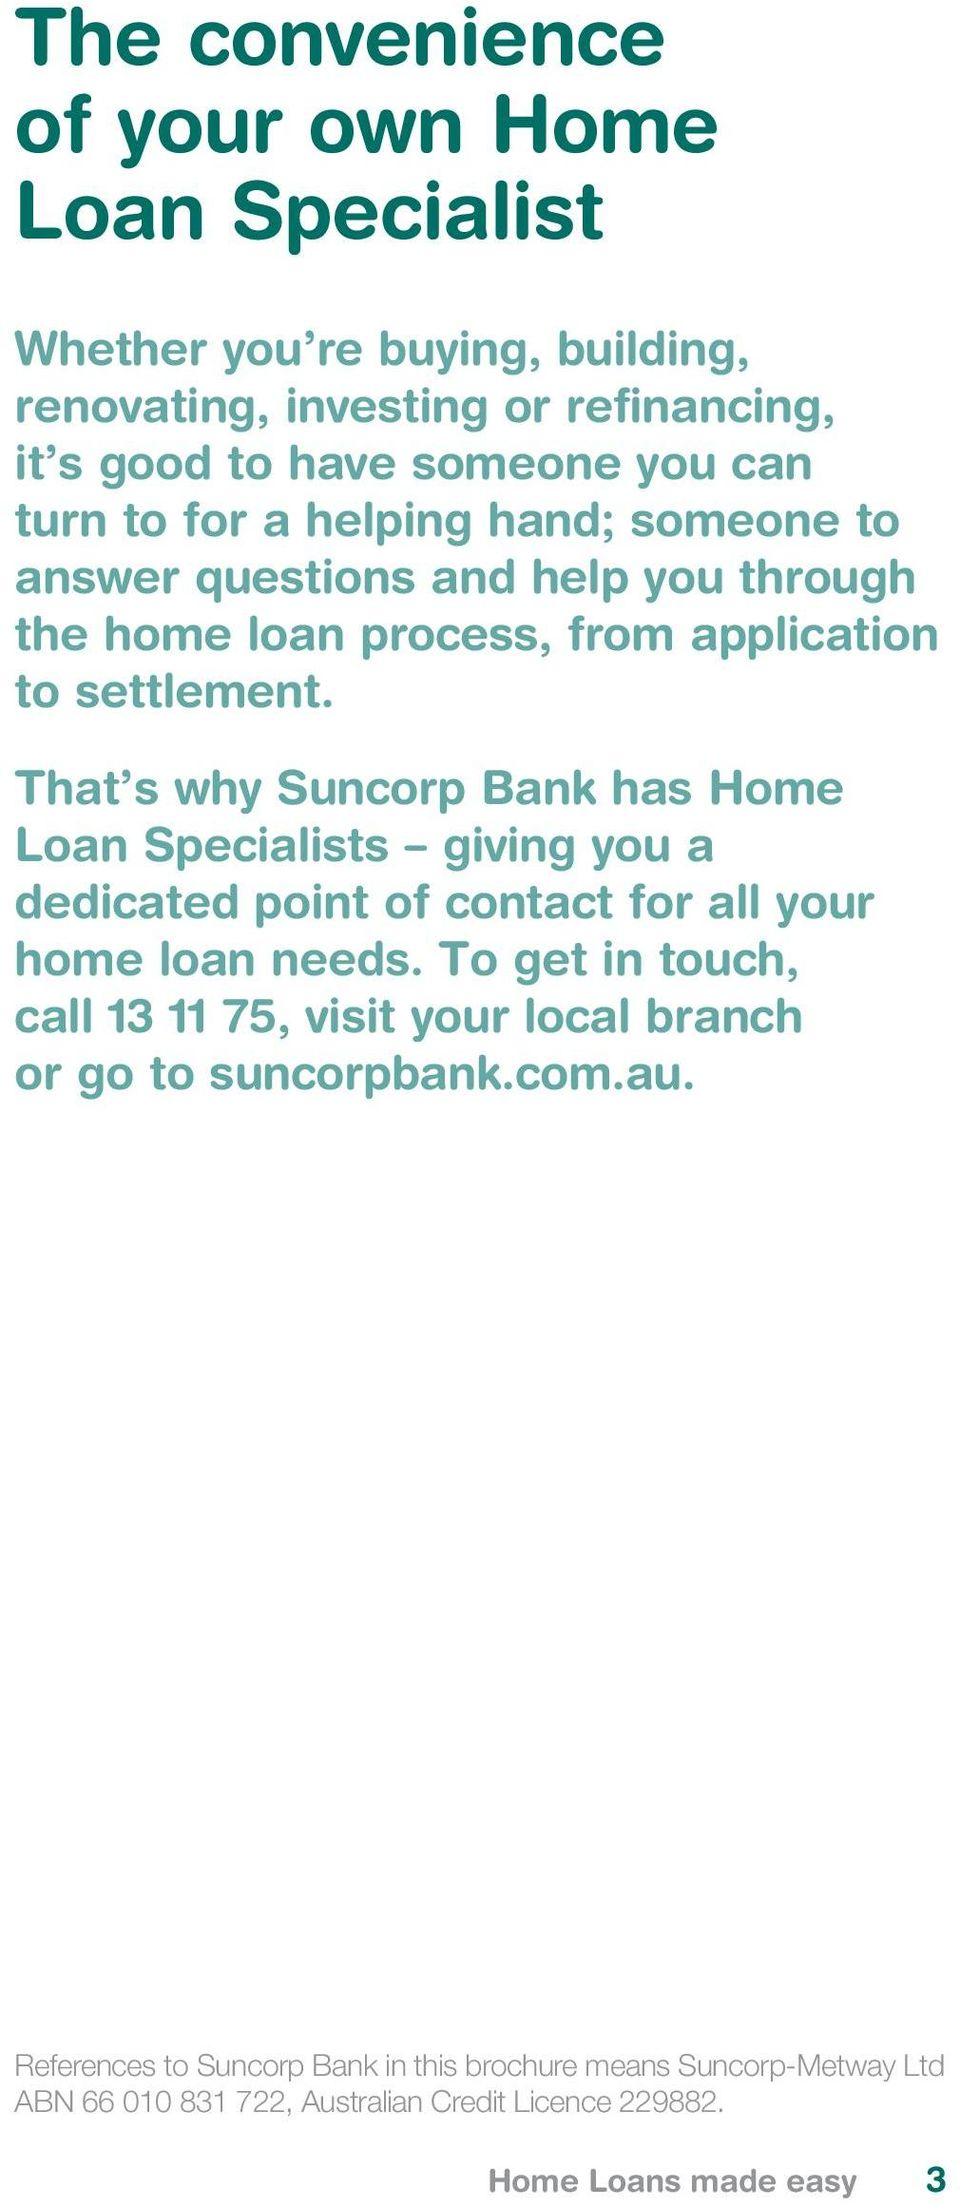 That s why Suncorp Bank has Home Loan Specialists giving you a dedicated point of contact for all your home loan needs.